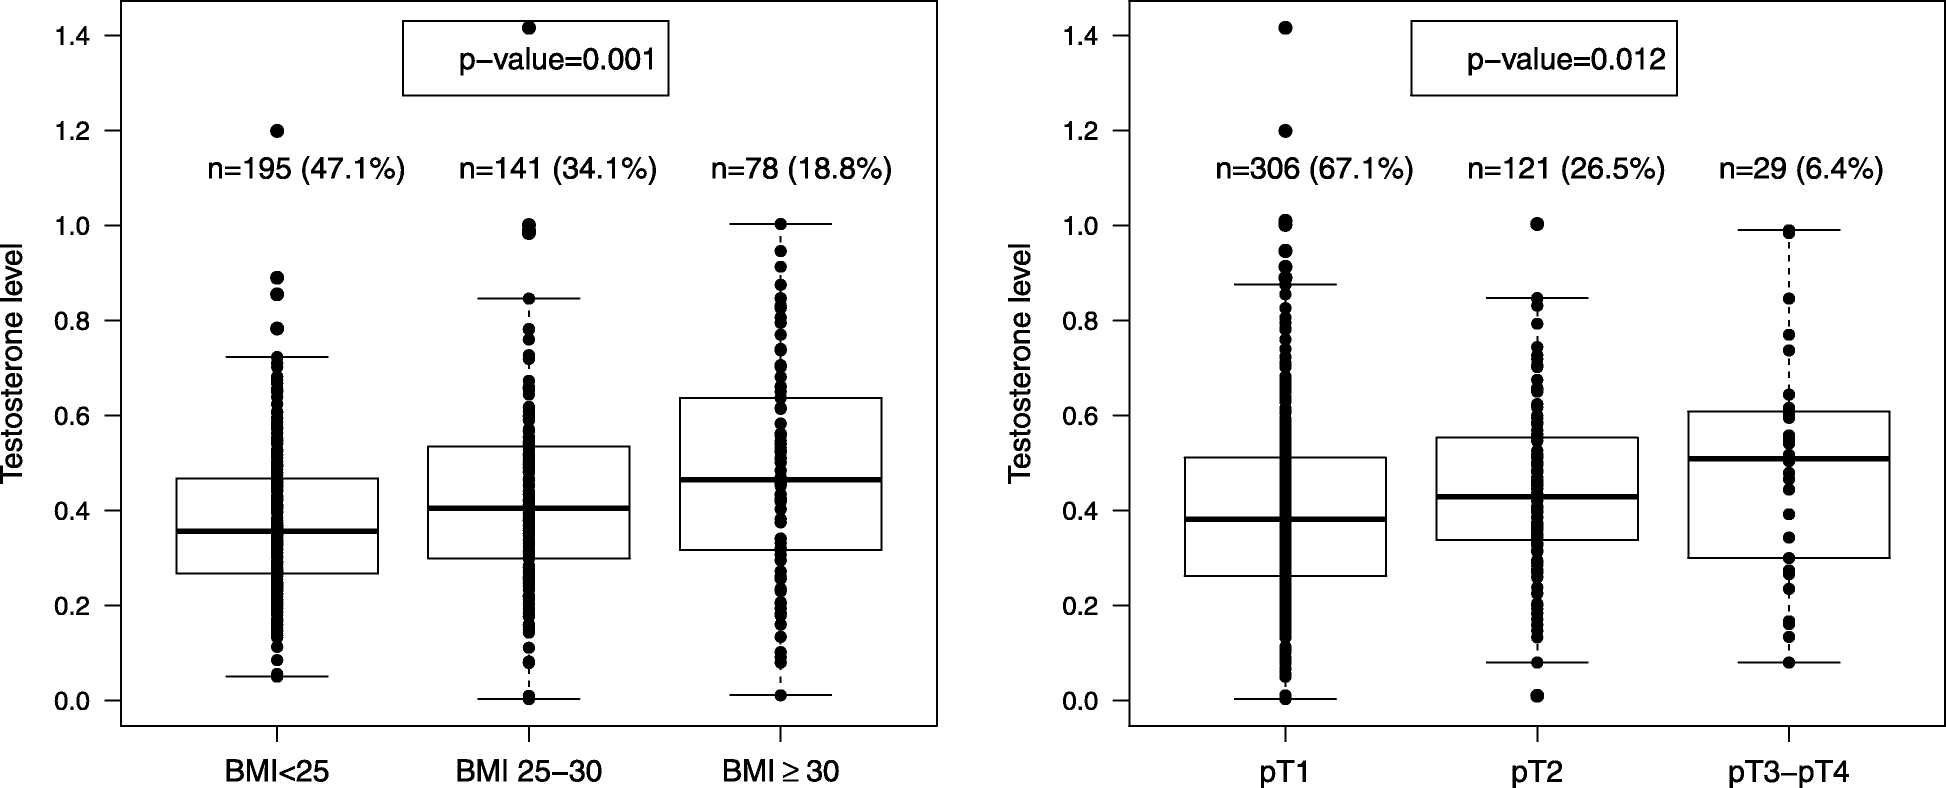 Observational Study On The Prognostic Value Of Testosterone And